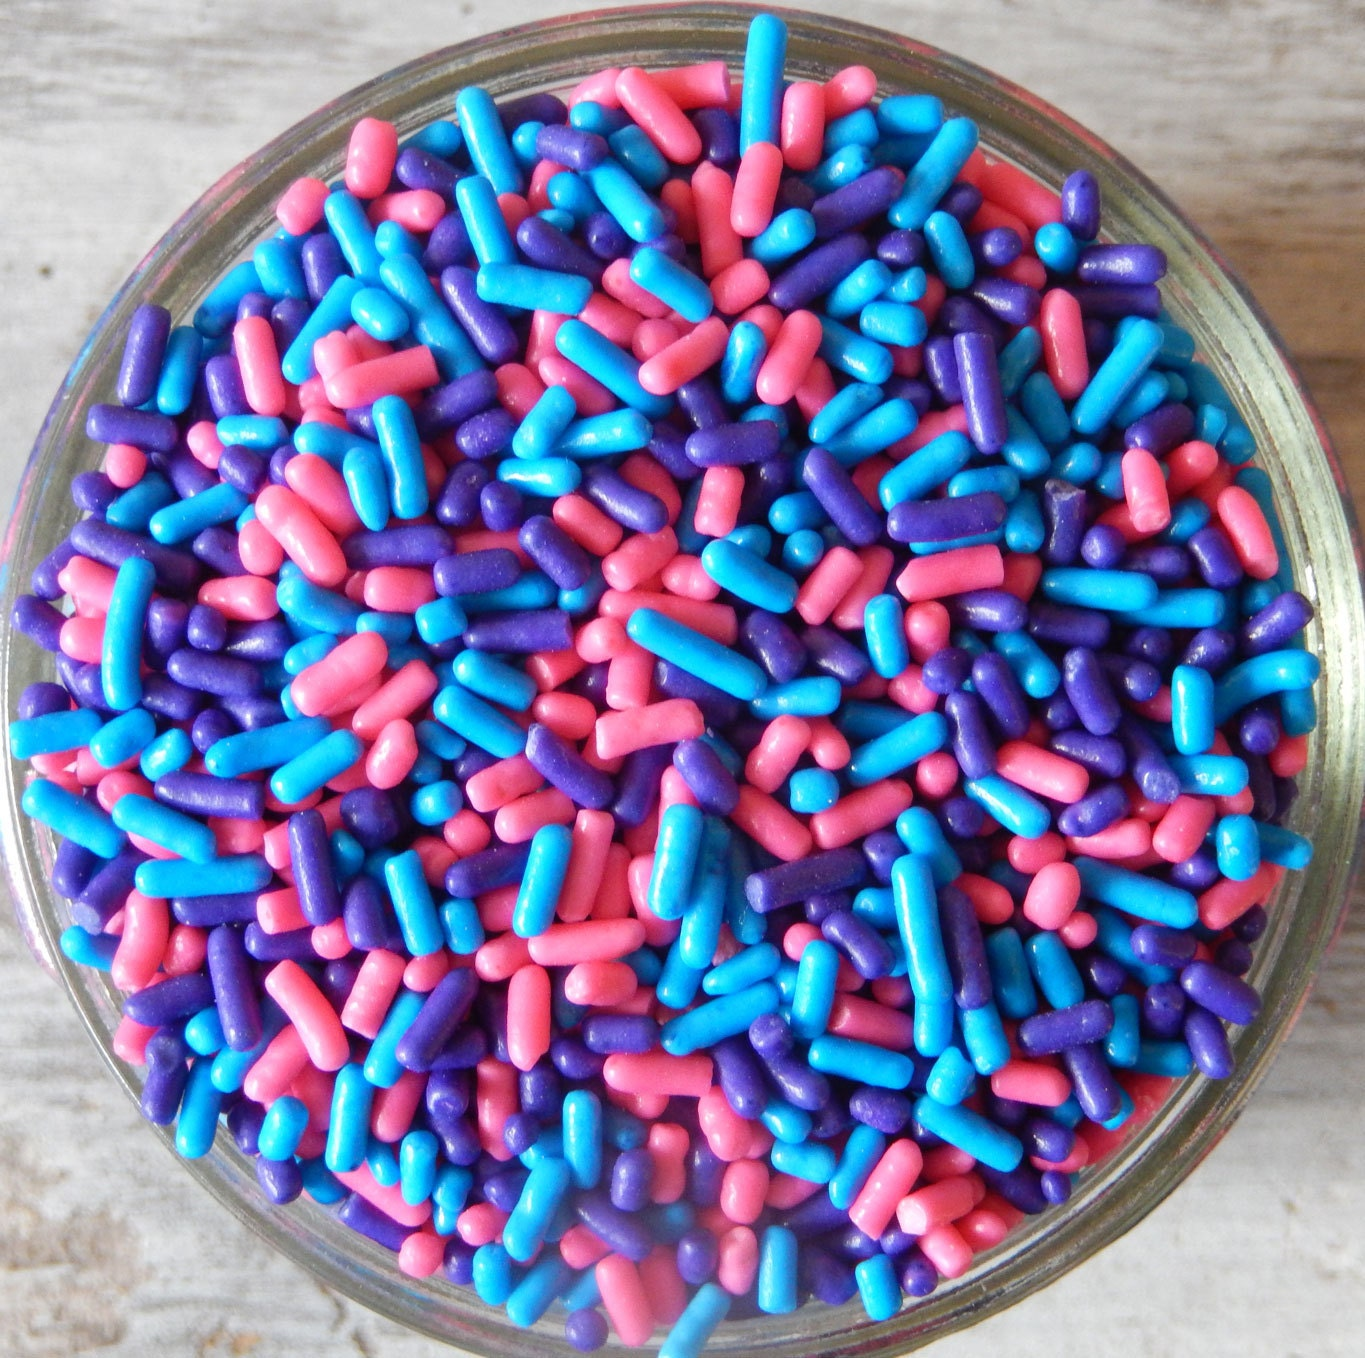 Sprinkles, 6 oz - Purple, Pink, Blue Jimmies Mix - For ...